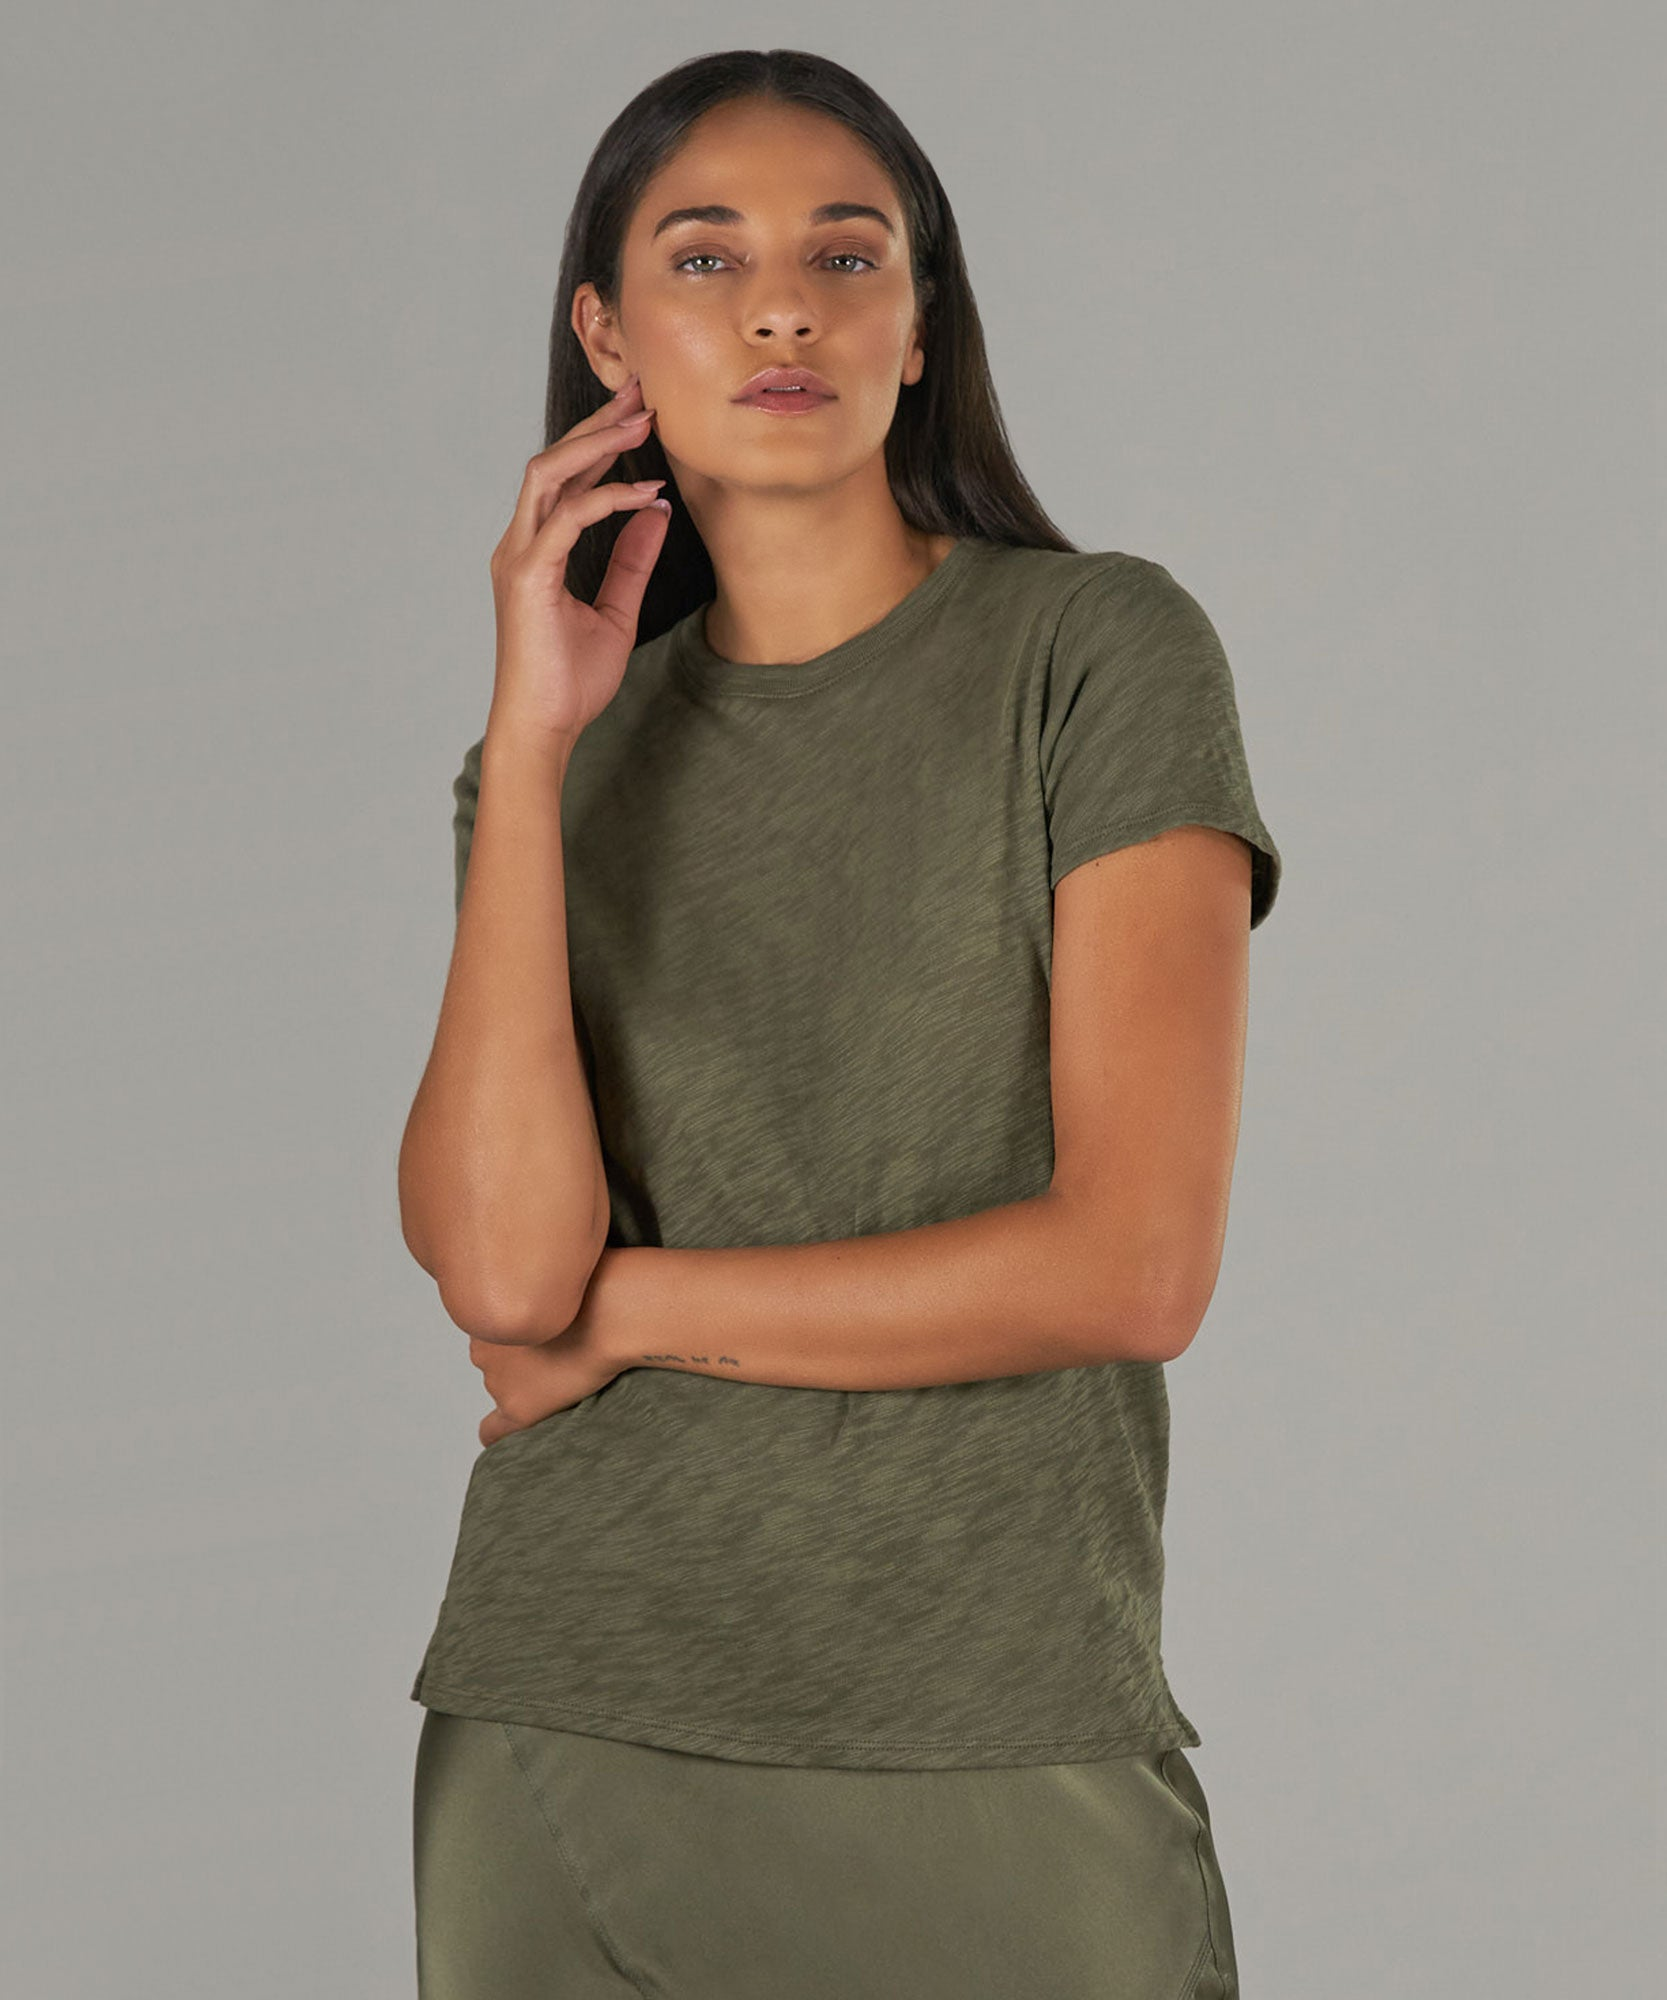 Army Slub Jersey Schoolboy Crew Neck Tee - Women's Short Sleeve T-Shirt by ATM Anthony Thomas Melillo